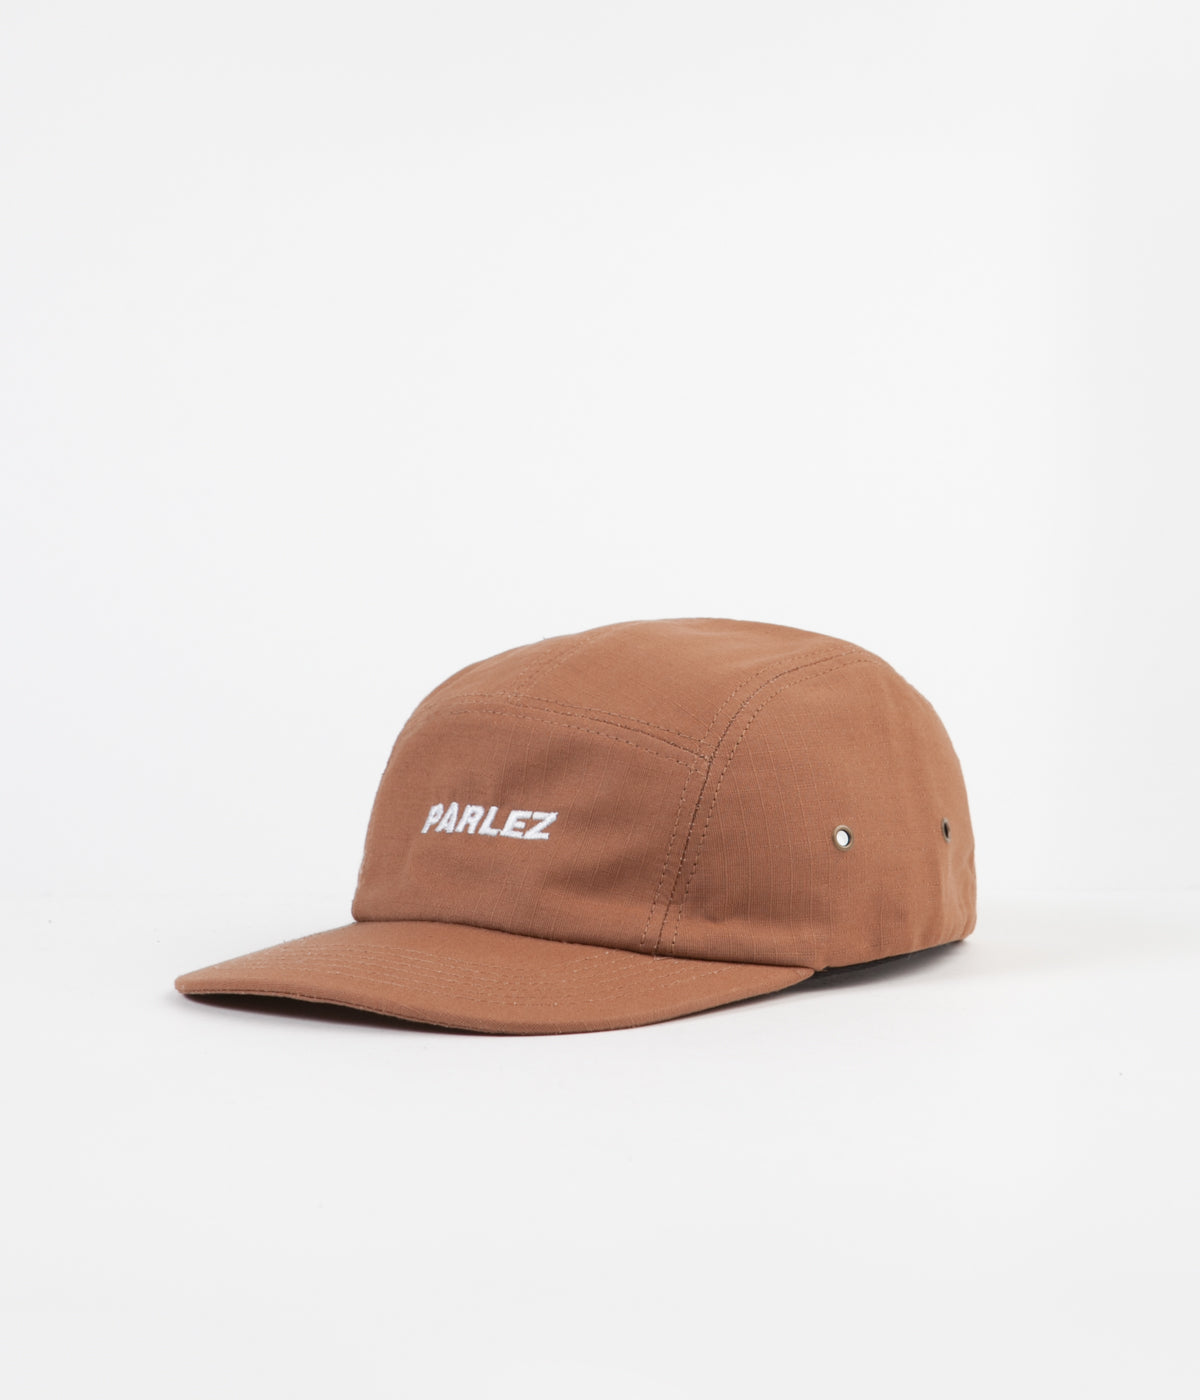 Parlez Ladsun 5 Panel Cap - Orange